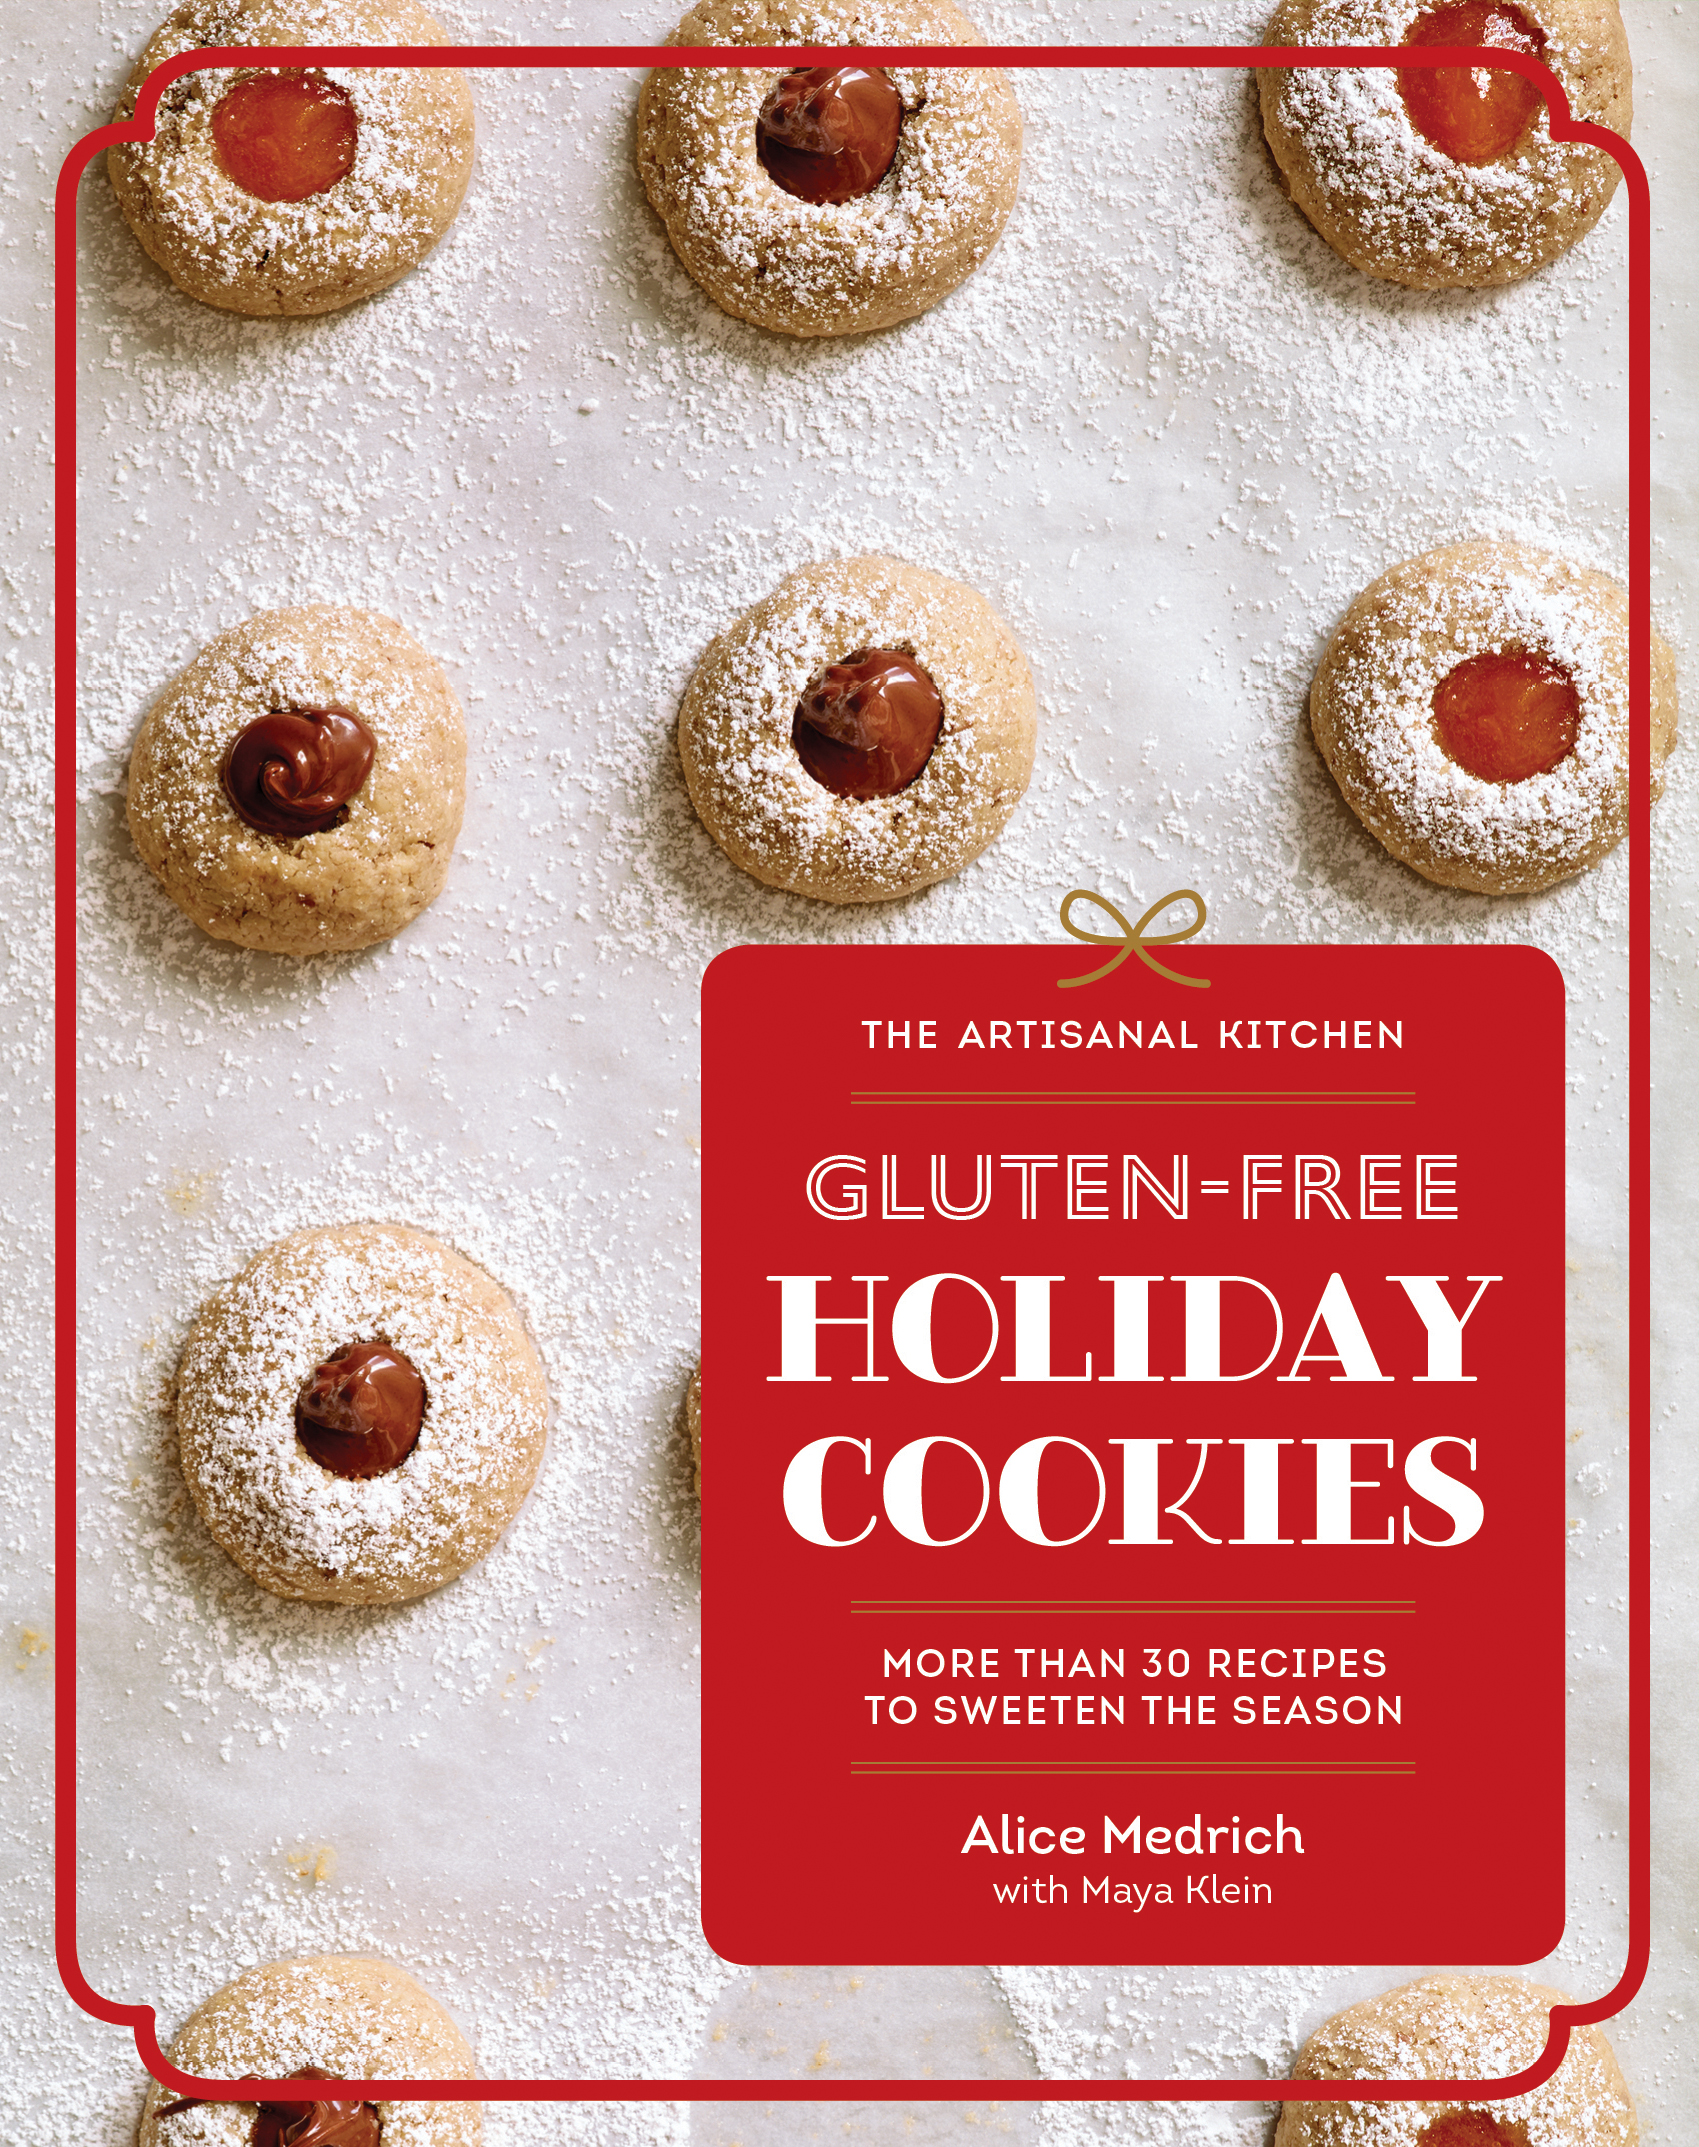 The Artisanal Kitchen: Gluten-Free Holiday Cookies